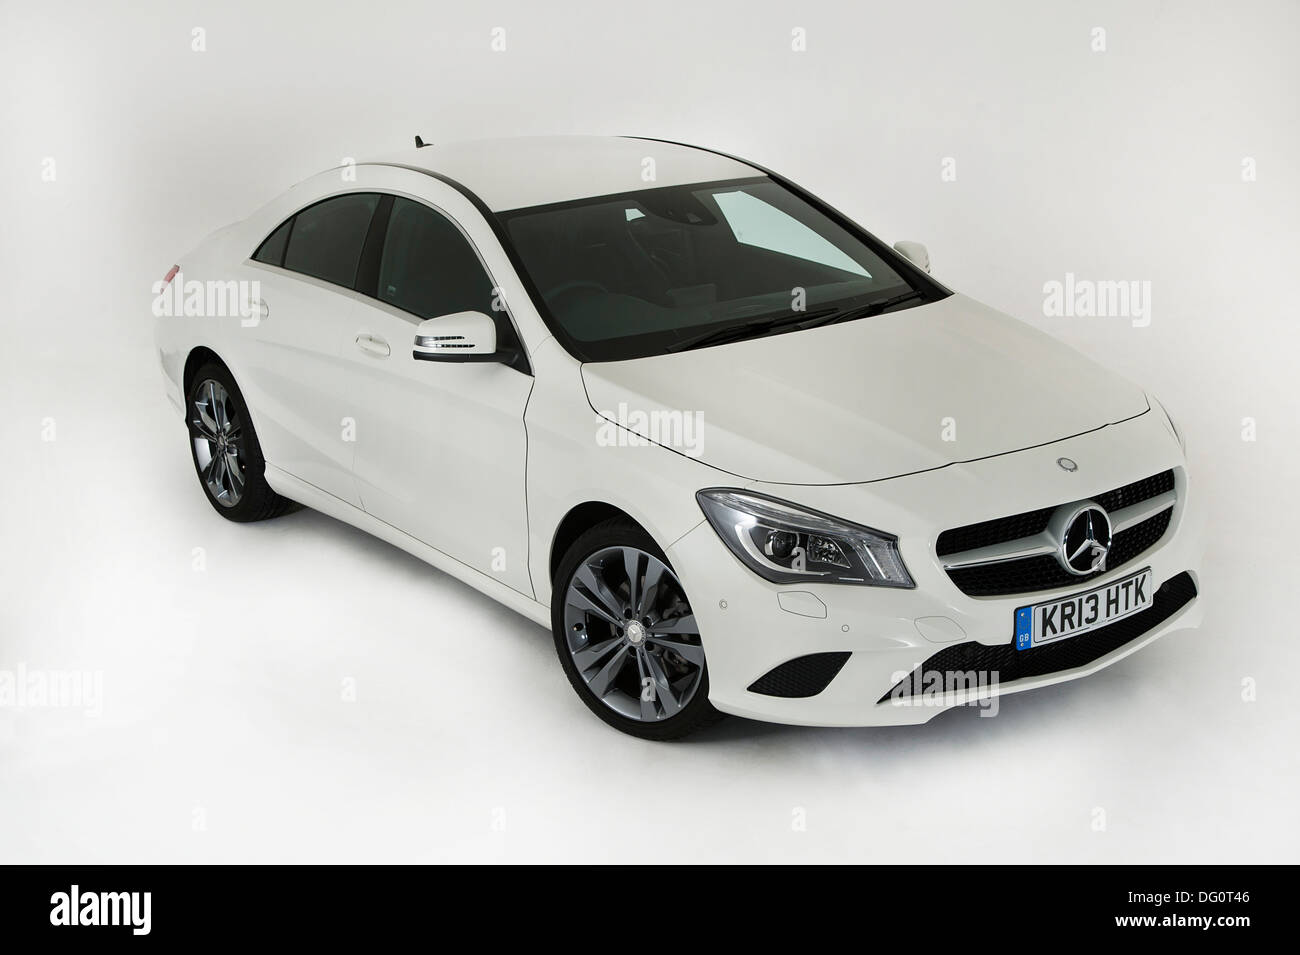 All Types 2013 mercedes cla : 2013 Mercedes Benz CLA 180 Sport Stock Photo: 61484534 - Alamy